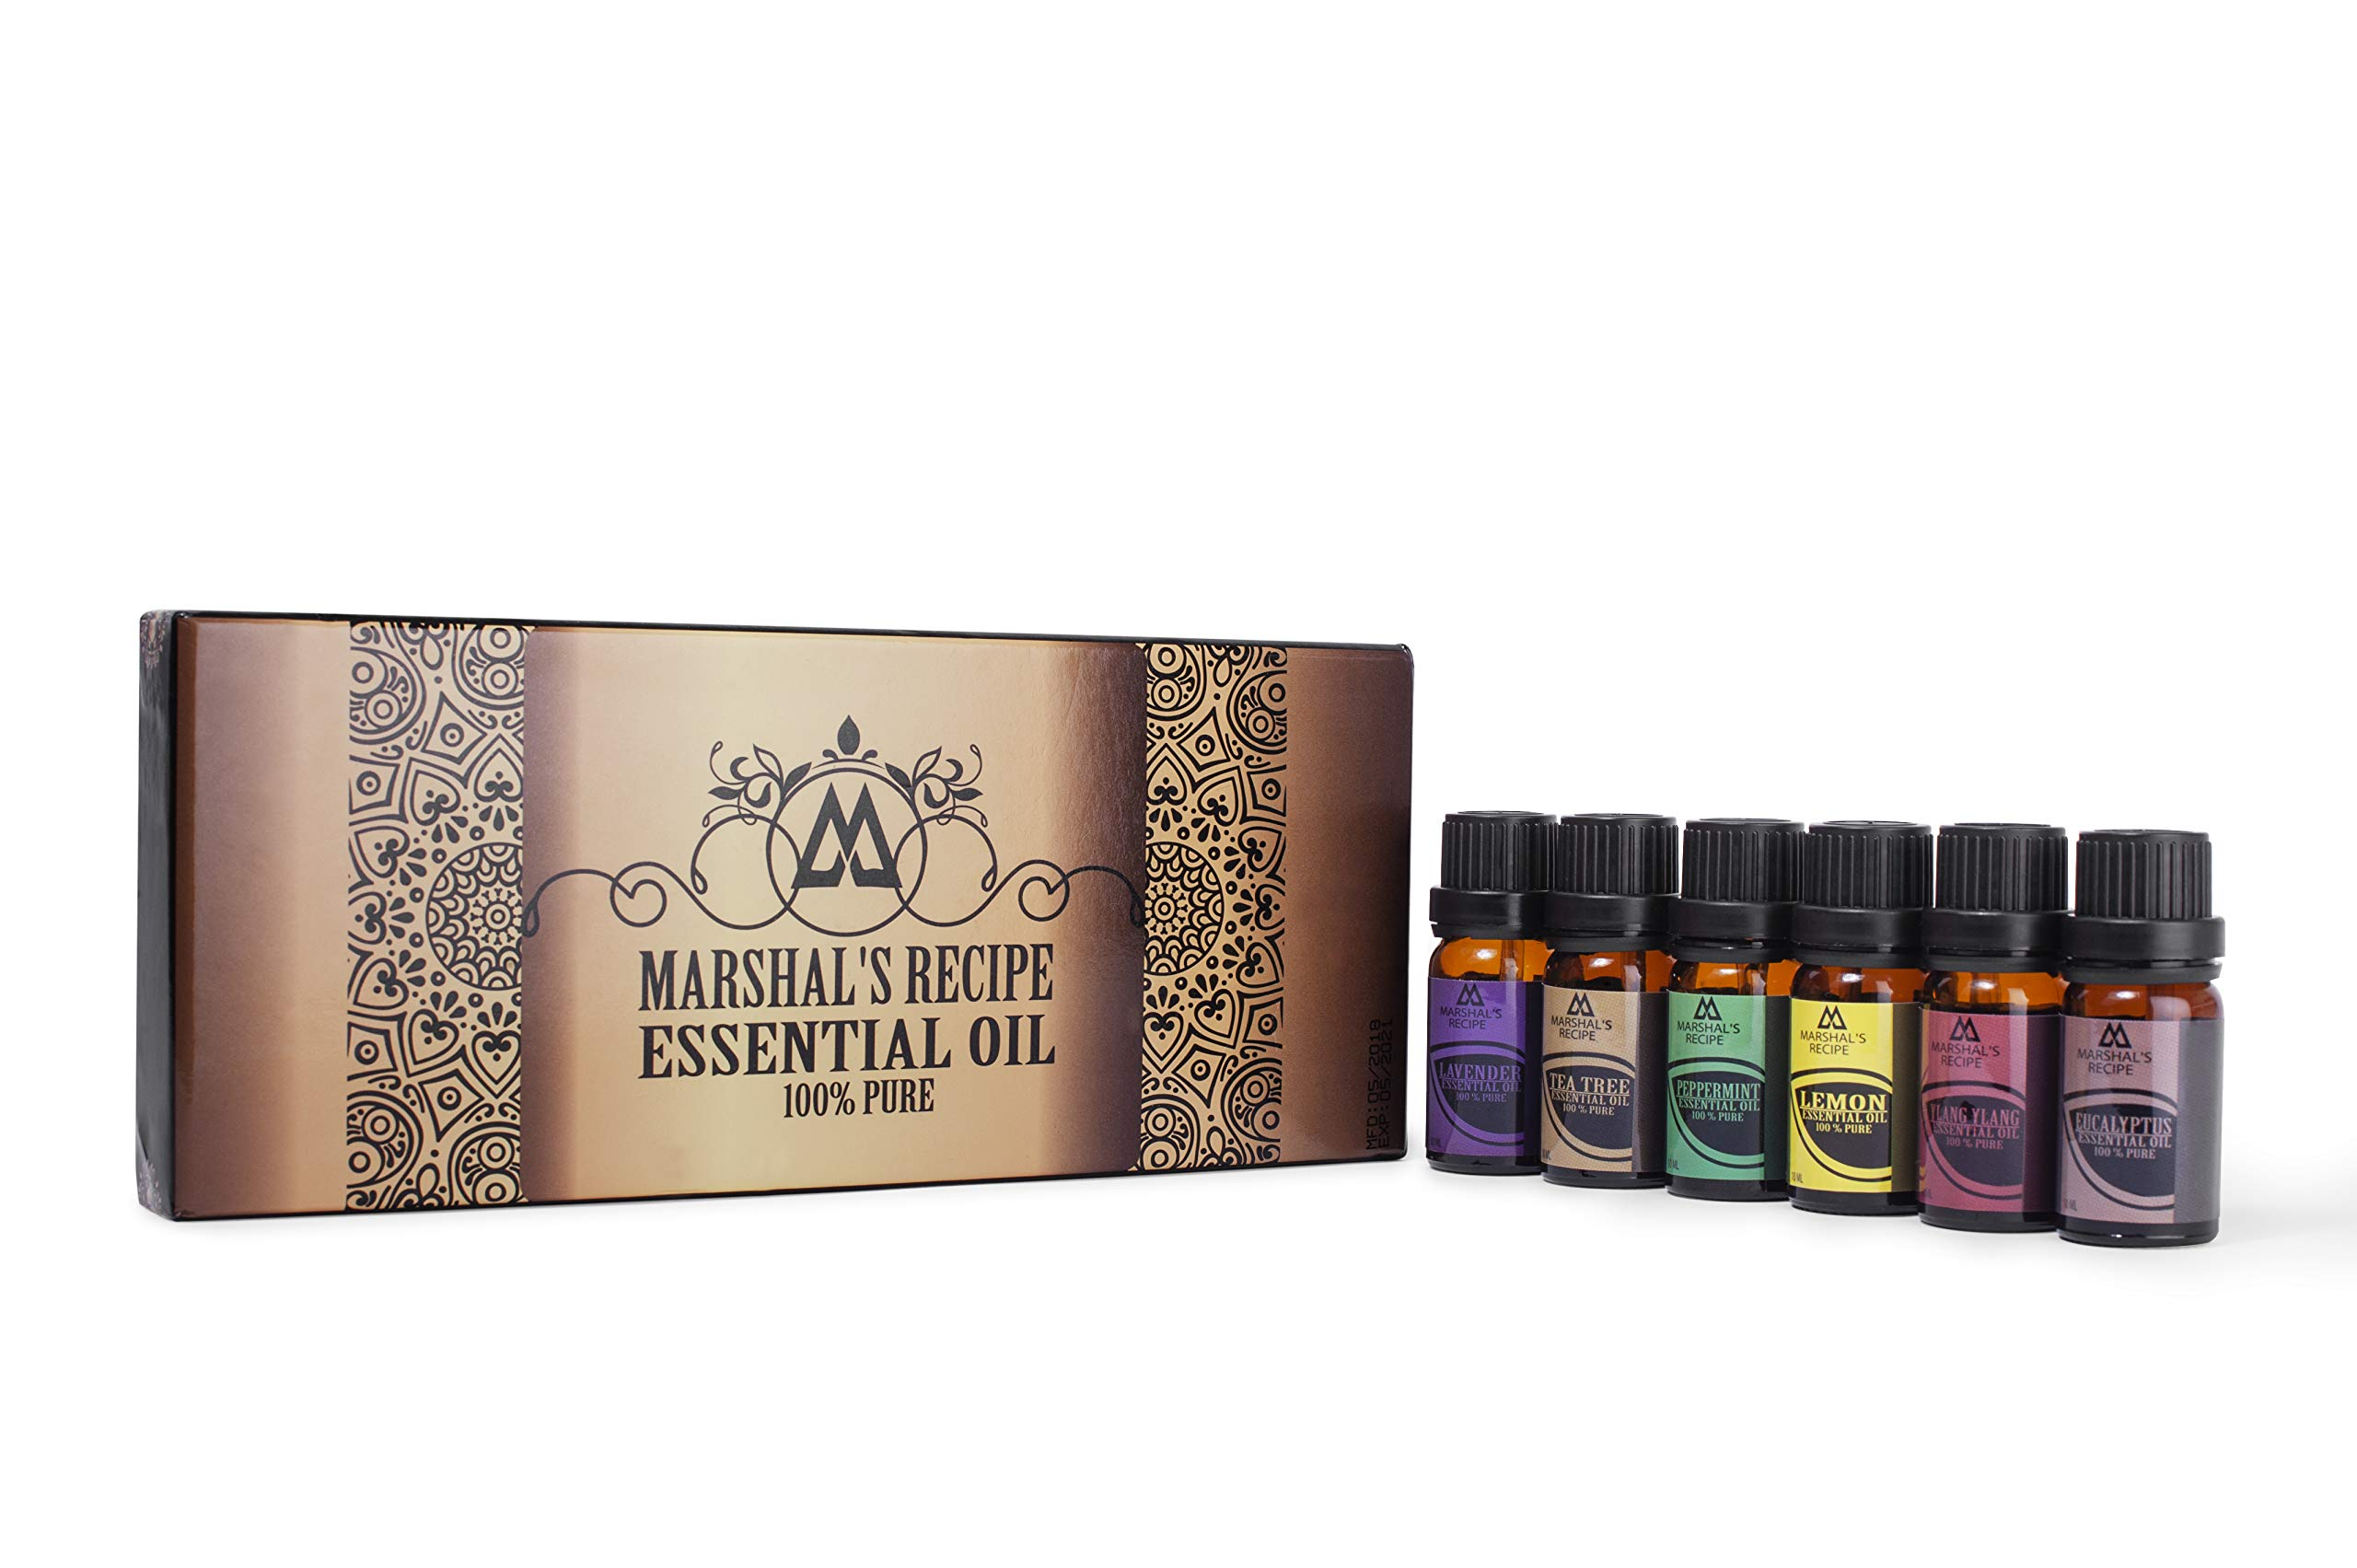 Marshal\'s Recipe Organic Essential Oil Kit (6 x10ml) - Six Aromas of The Highest Quality Tea Tree, Eucalyptus, Lavender, Ylang Ylang, Lemon and Peppermint